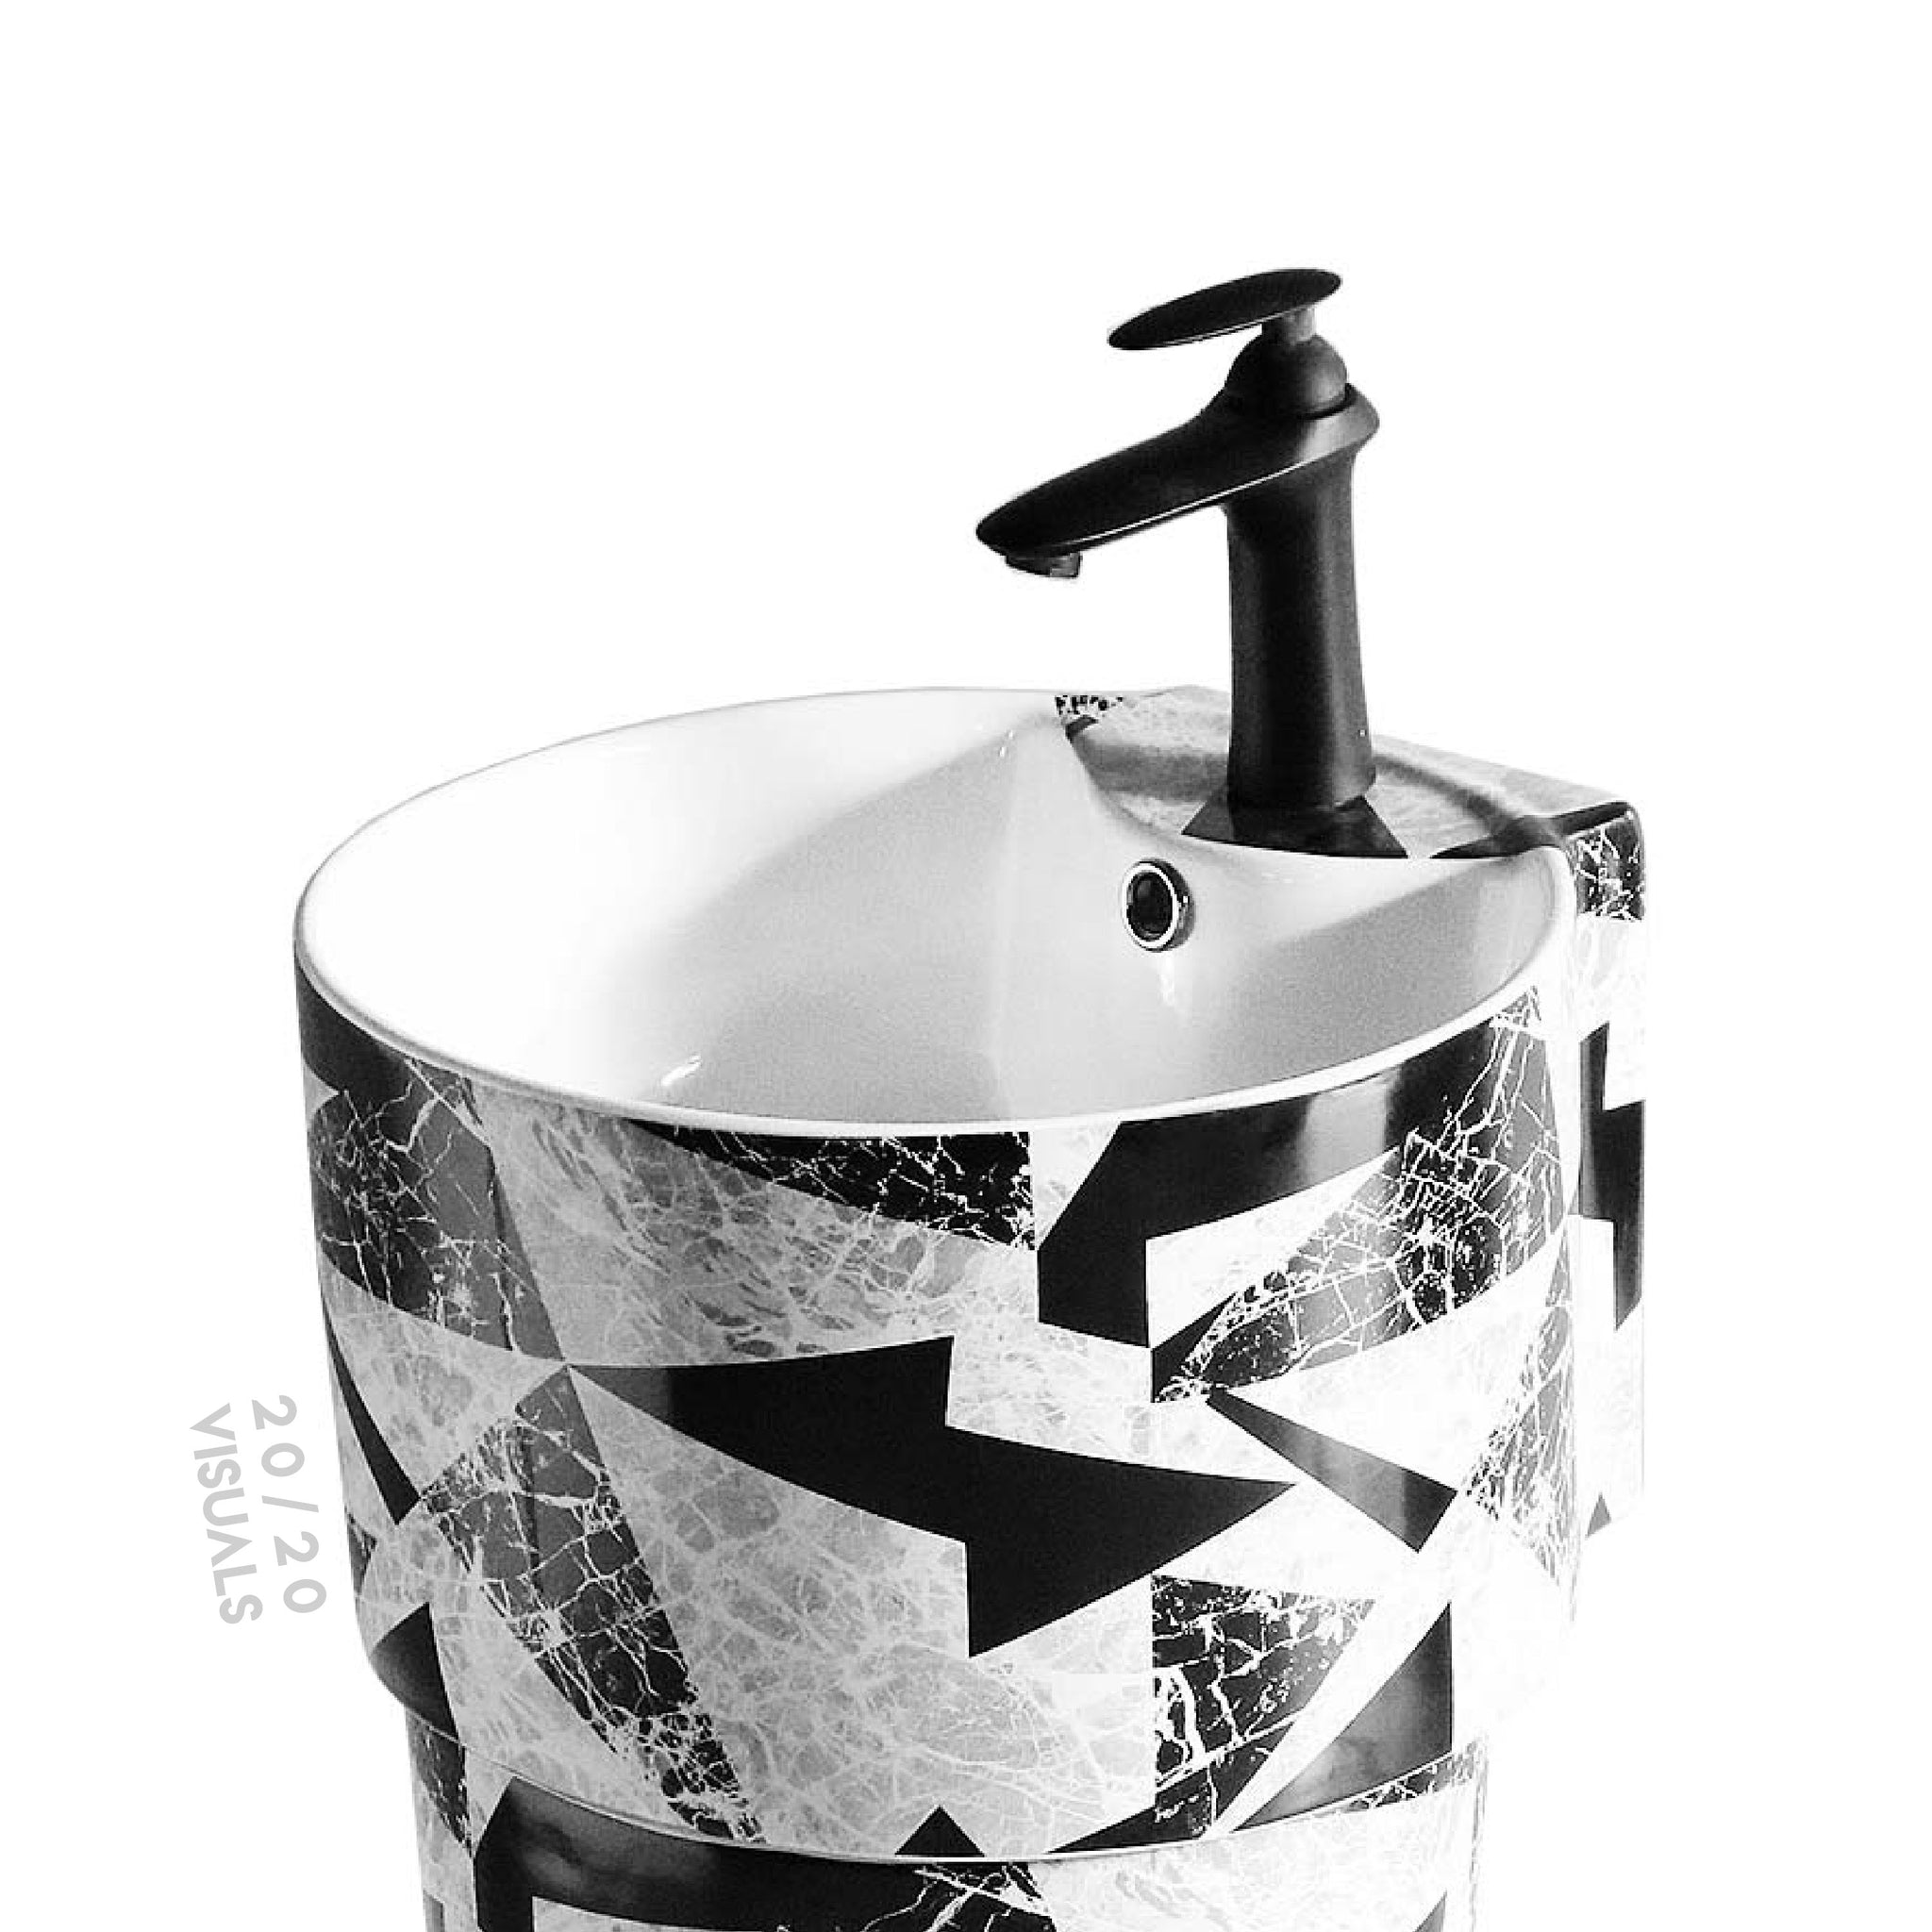 Graphic Print Pedestal Sink